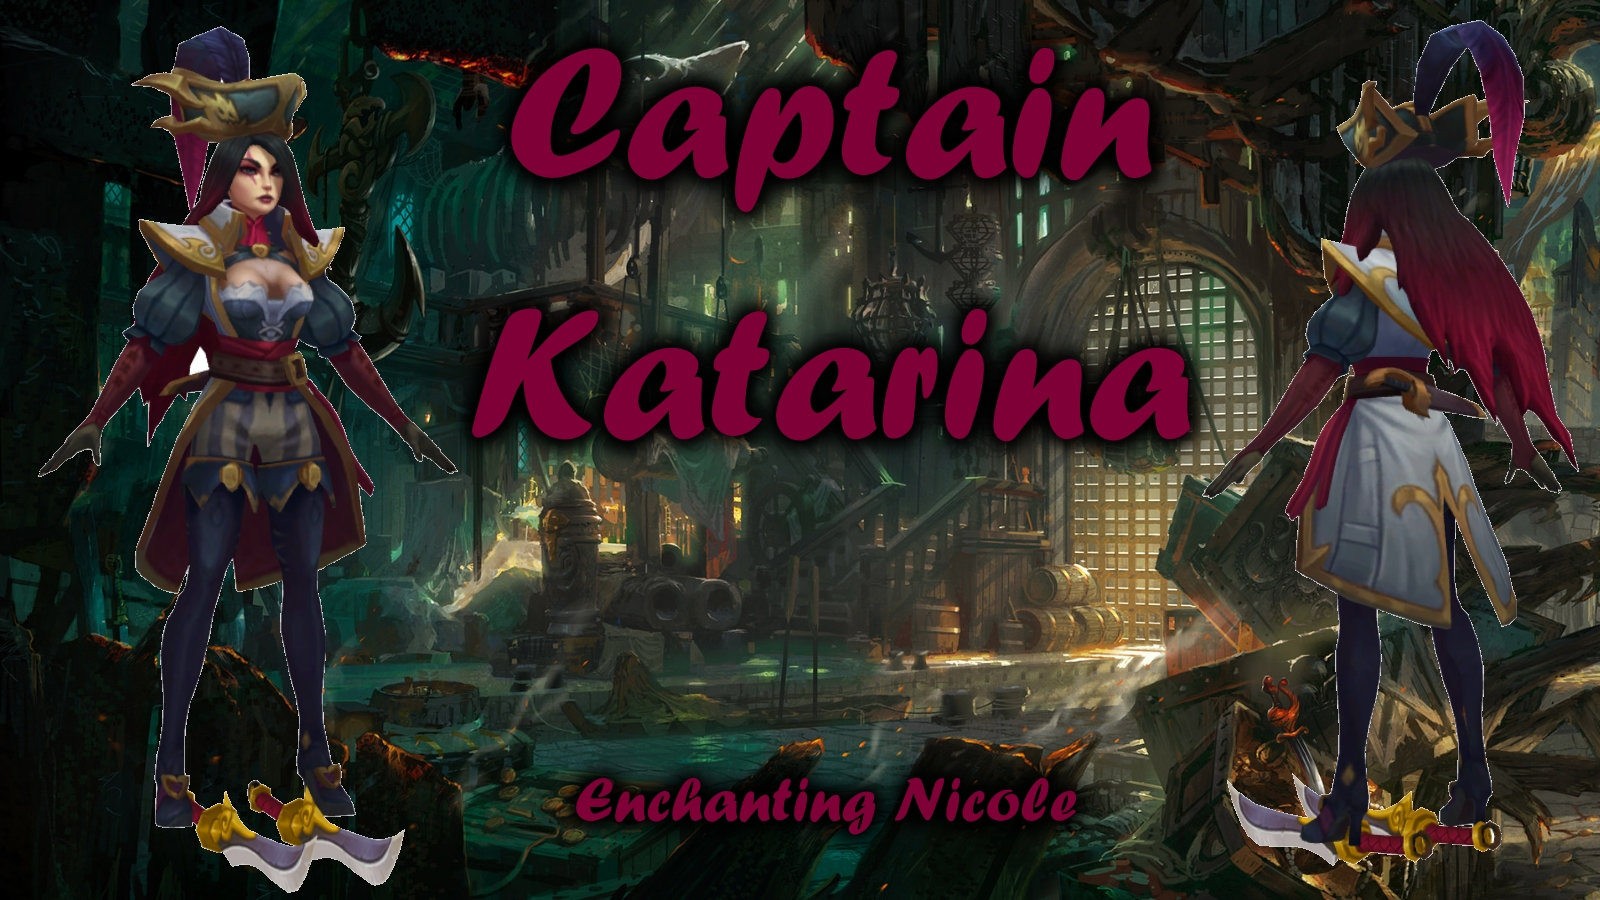 Captain Katarina